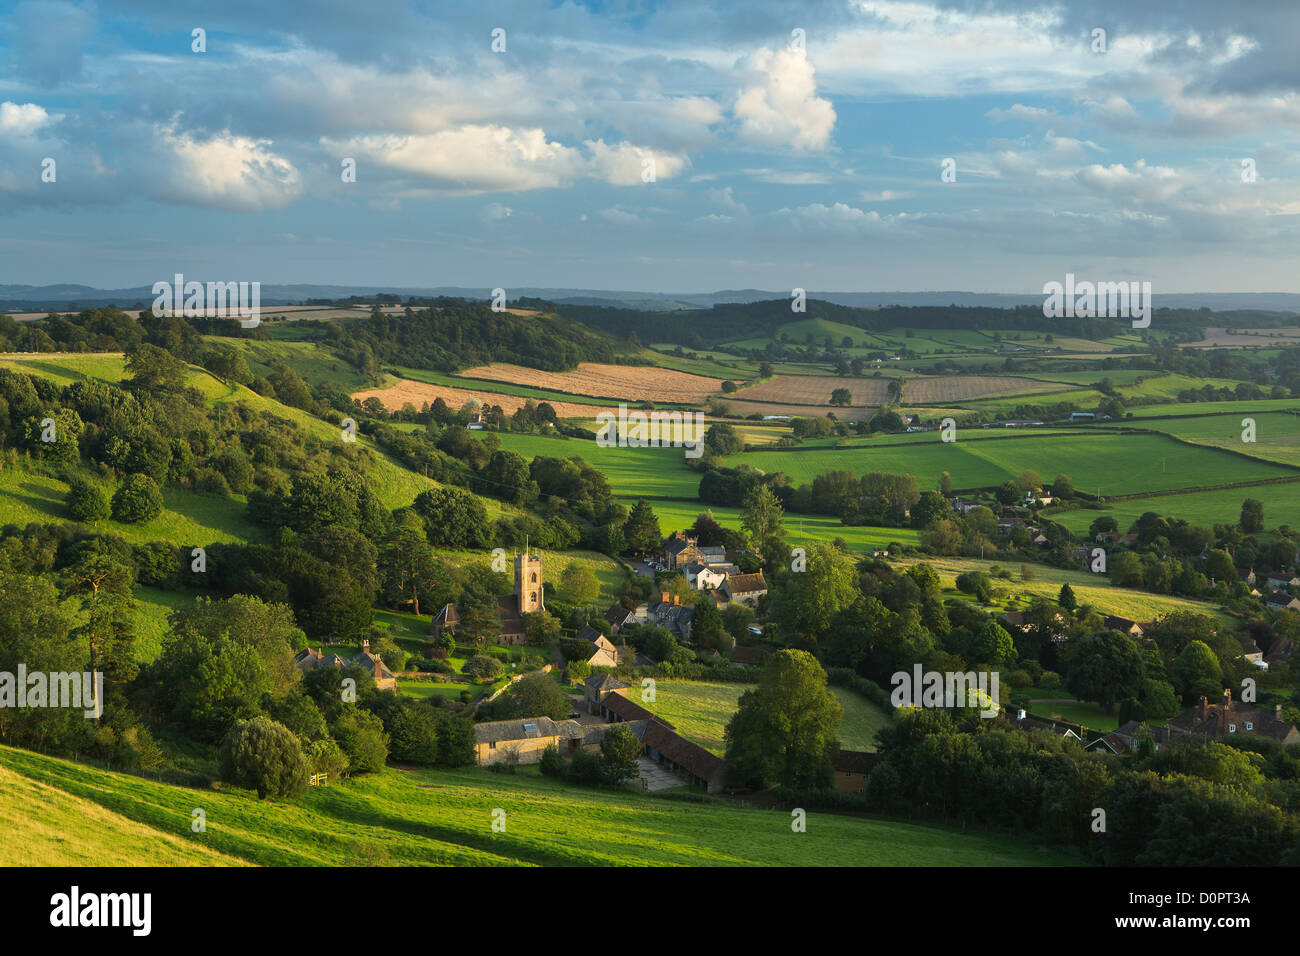 Corton Denham, Somerset, England, UK - Stock Image